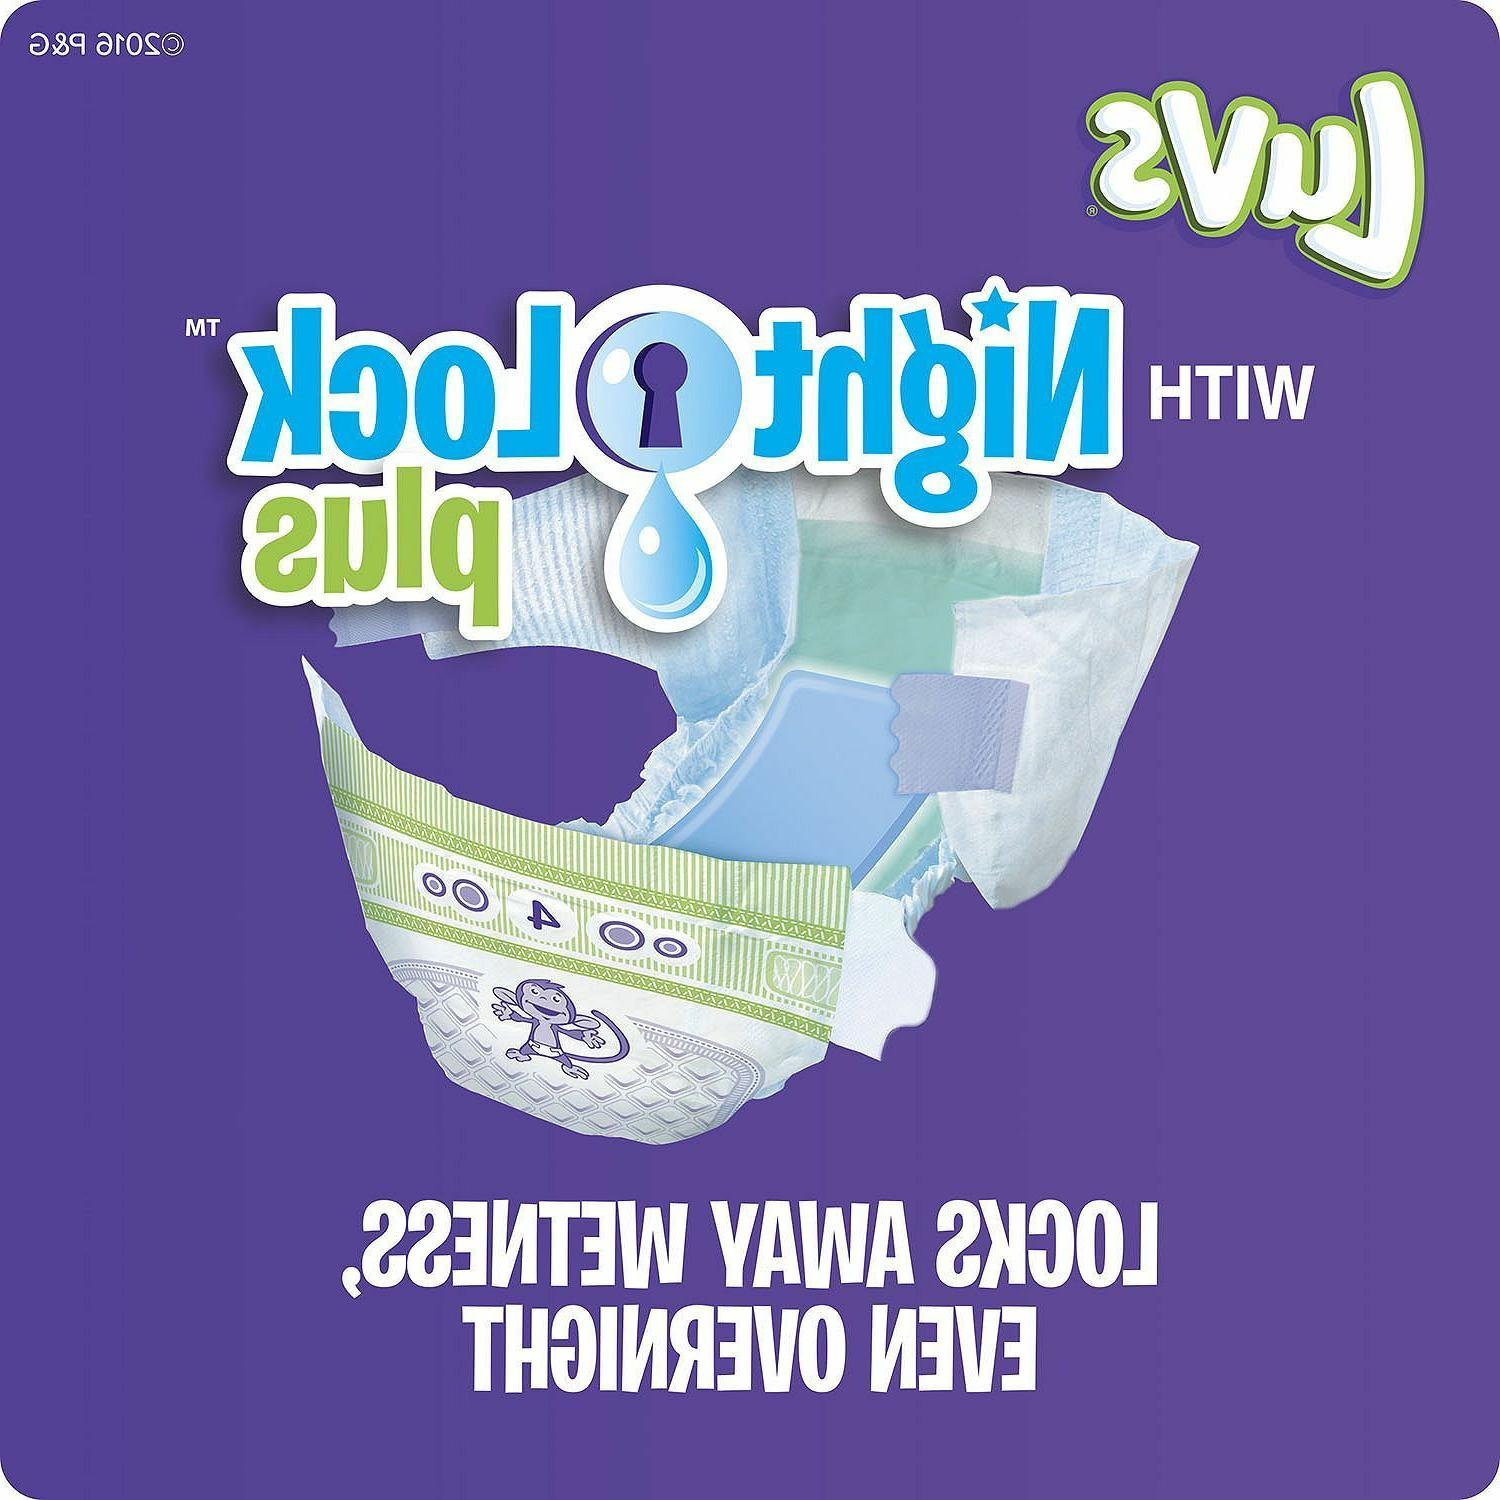 DIAPERS ULTRA GUARD PROCTOR